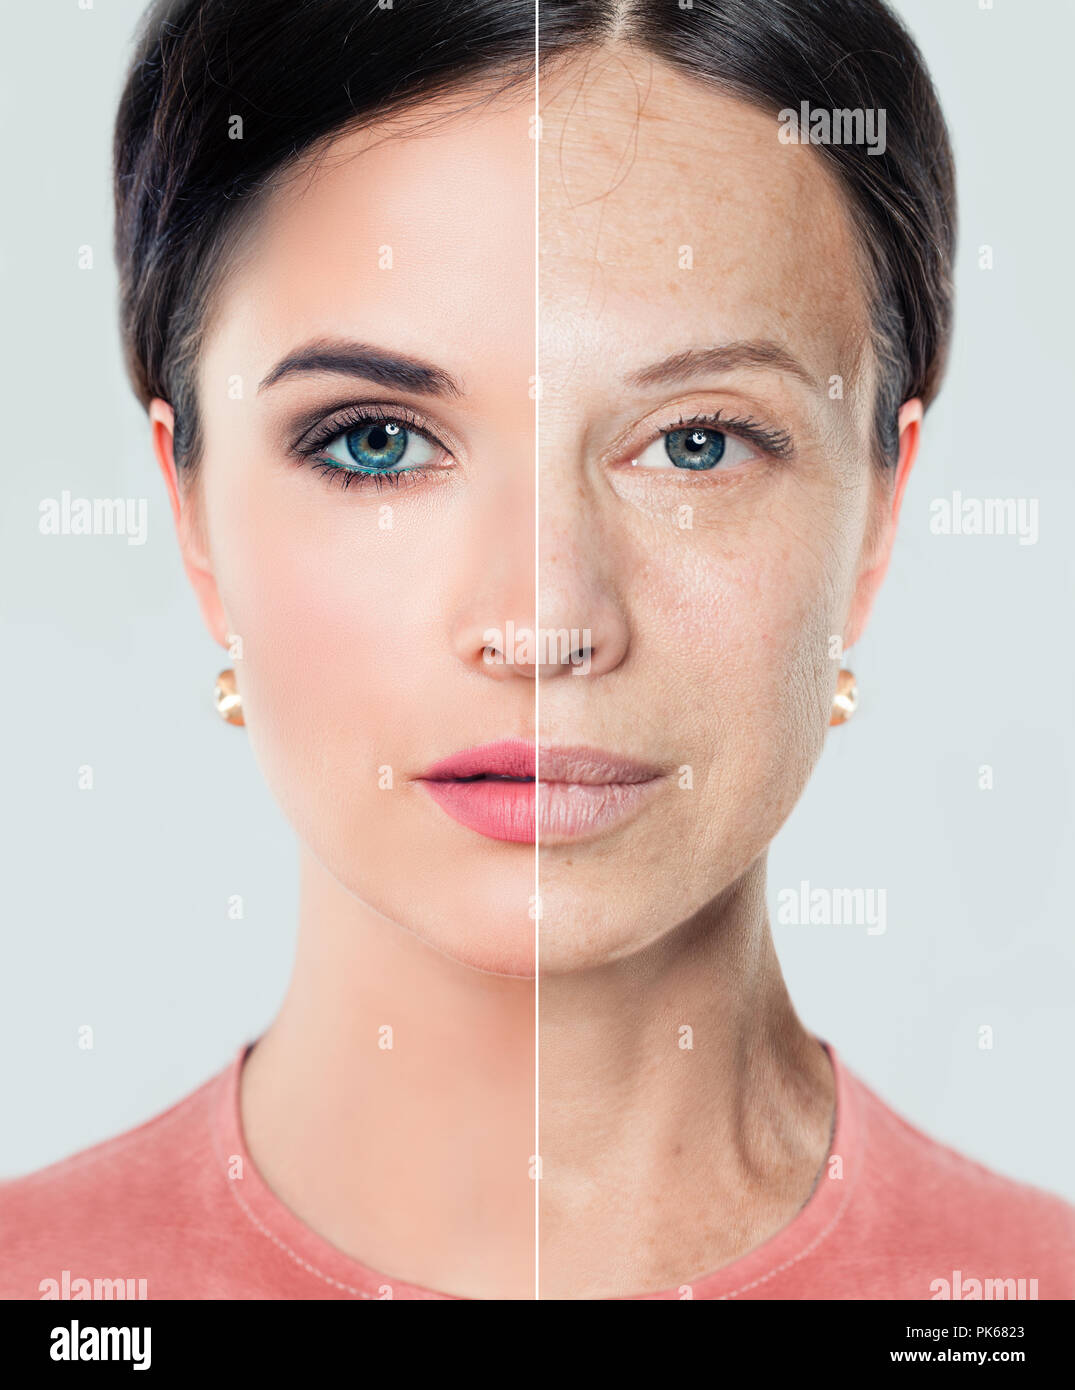 Aging and youth concept. Beautiful woman with problem and clean skin, beauty treatment and lifting. Before and after, youth and old age. Process of ag - Stock Image